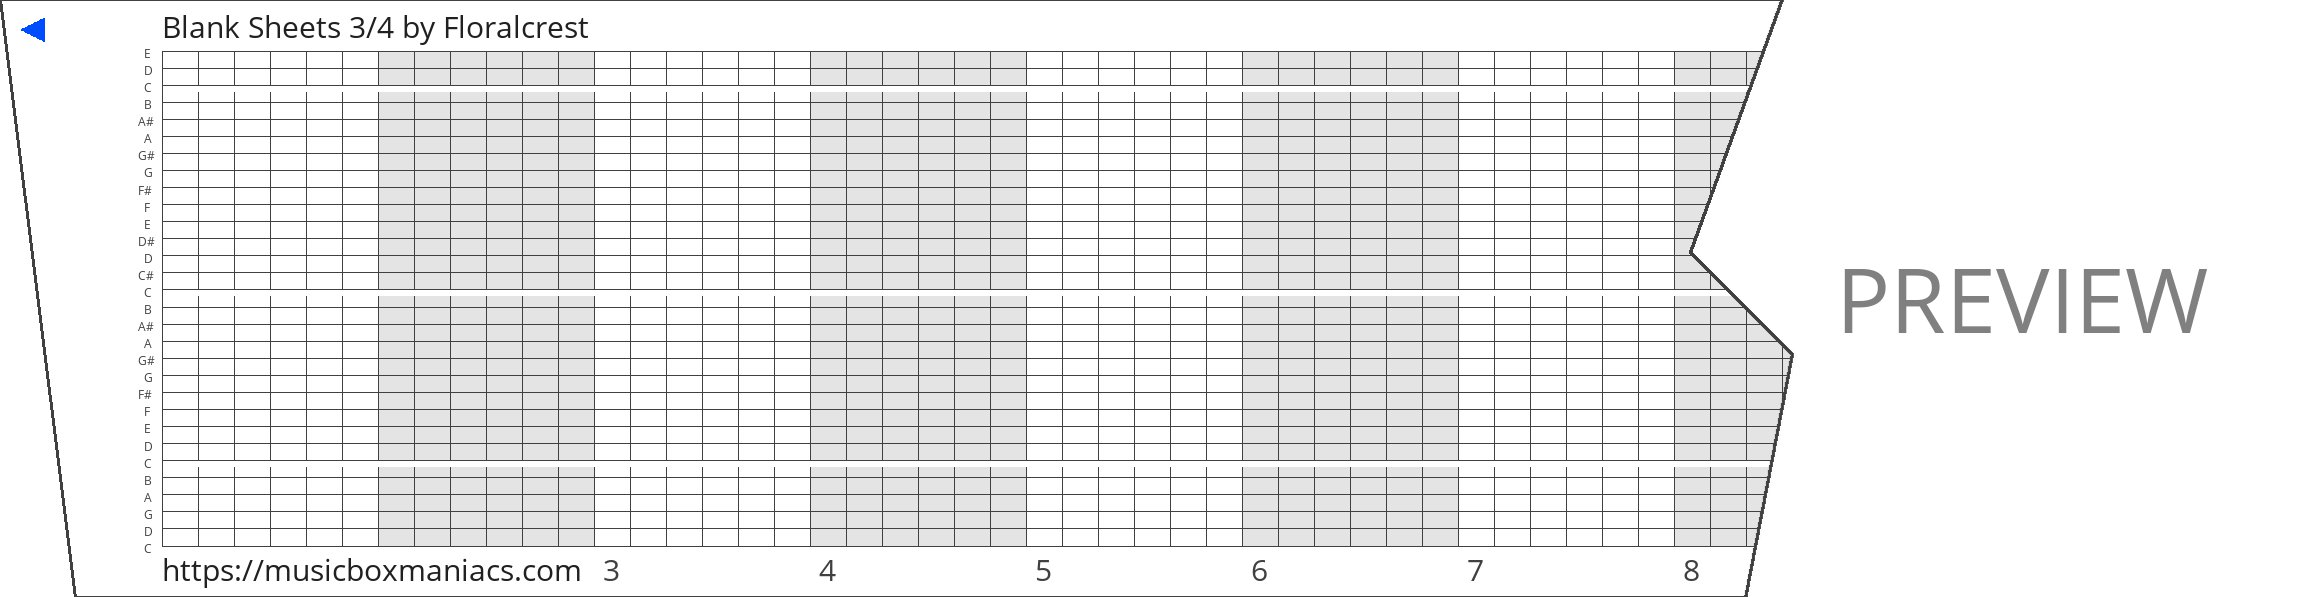 Blank Sheets 3/4 30 note music box paper strip